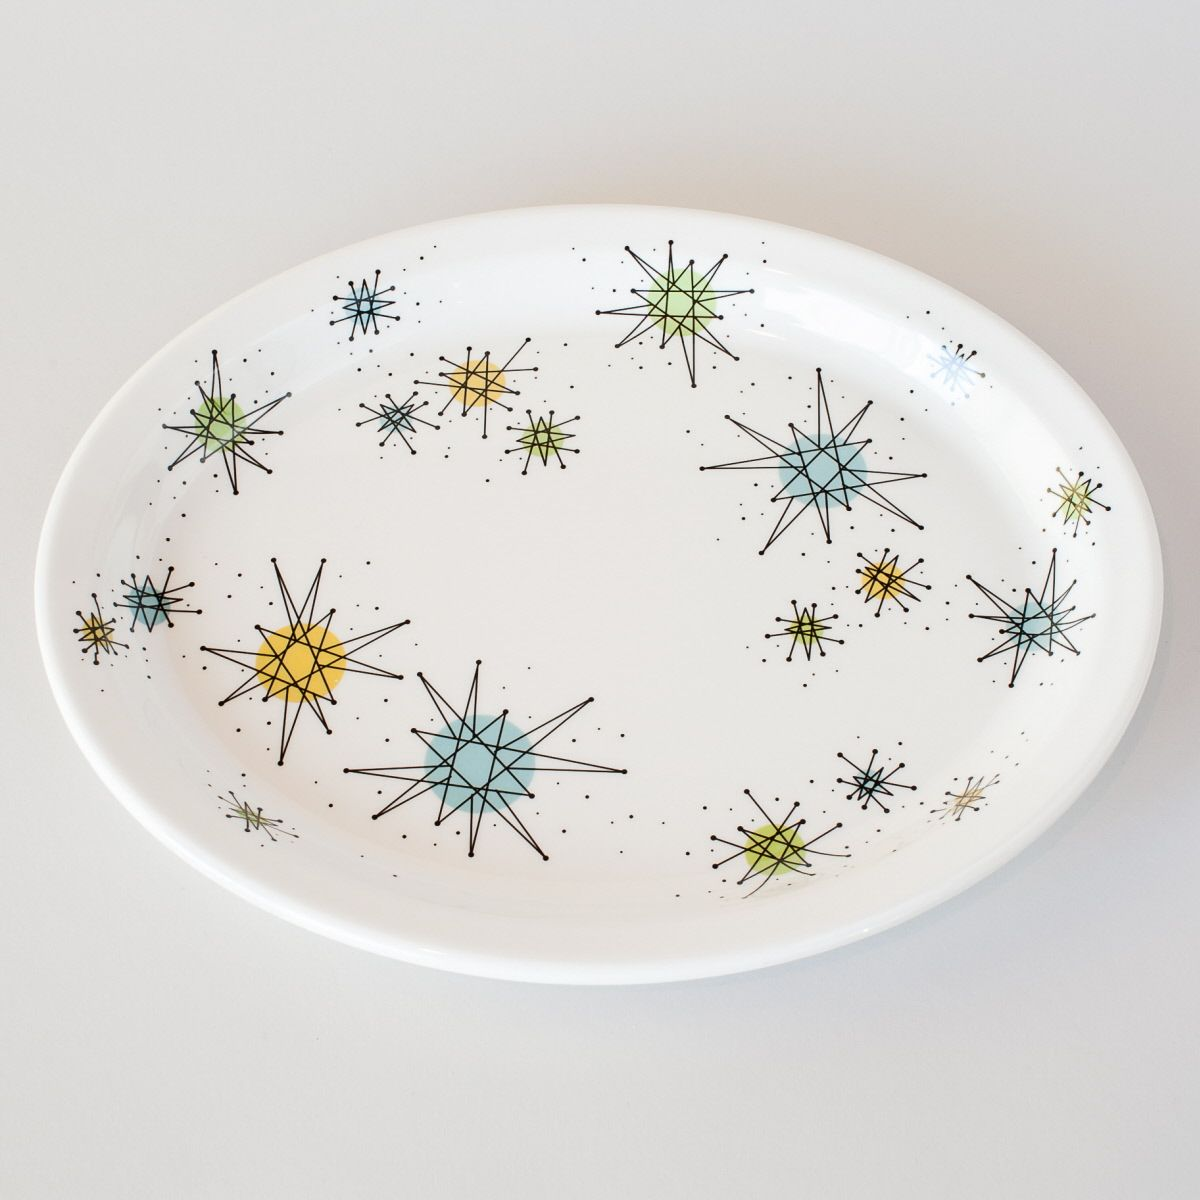 Atomic Starburst Reproduction Sputnik Dinner Plate & The Atomic Starburst Oval Dinner Plate adds 50s style to your retro ...